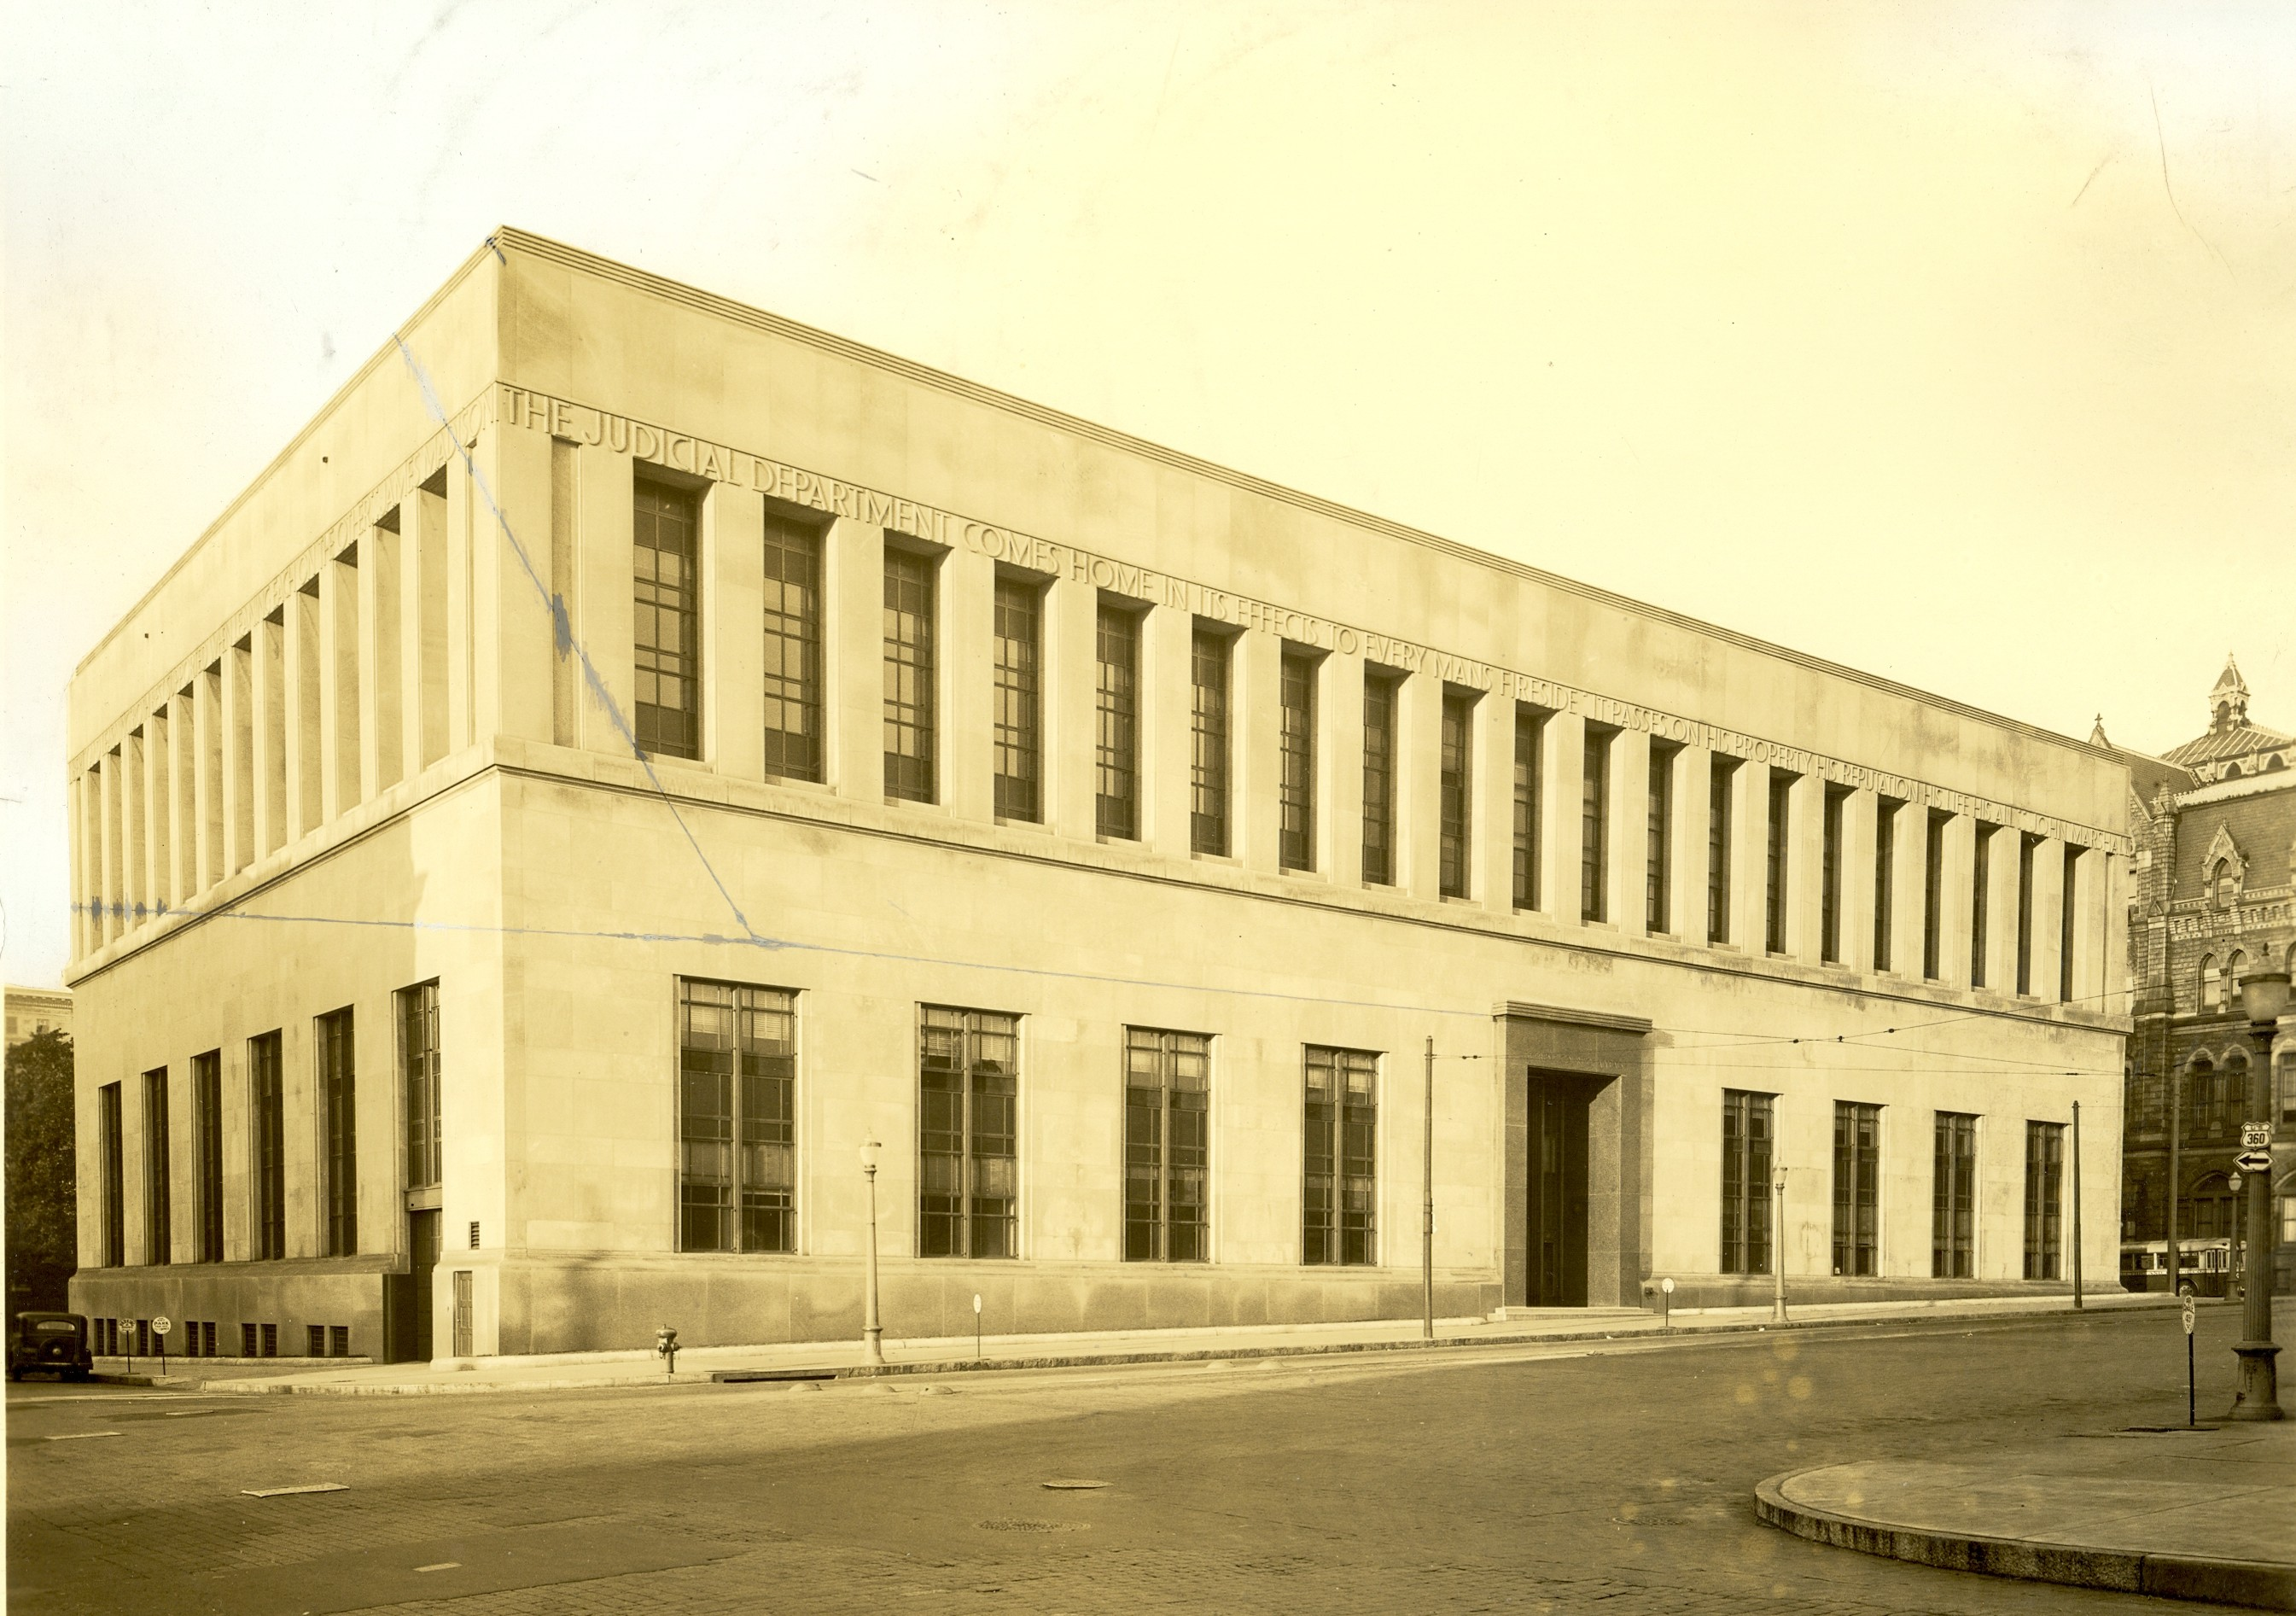 Photograph, circa 1940, of the Supreme Court of Appeals - State Library Building.  This structure, located on Broad Street north of Capitol Square,  housed the court from 1941 to 1981. It was renovated and renamed the Patrick Henry Building in 2005.